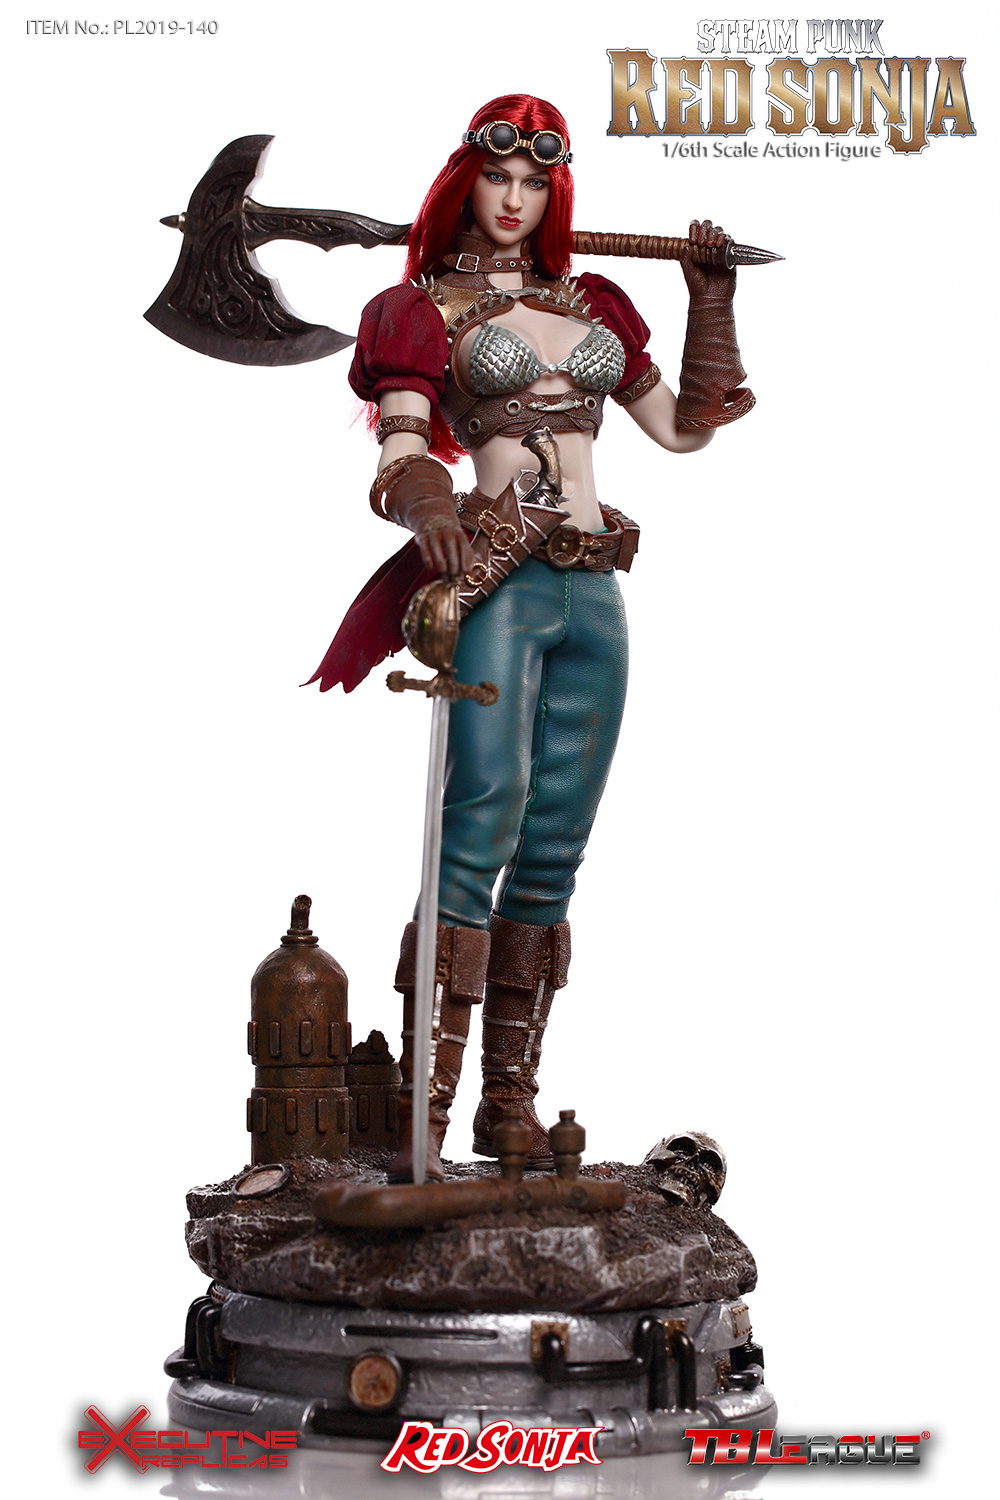 steampunk - NEW PRODUCT: TBLeague: 1/6 Steam Punk - Red Sonja / Queen Excalibur [punk version] PL2019-140-A/B 20192710